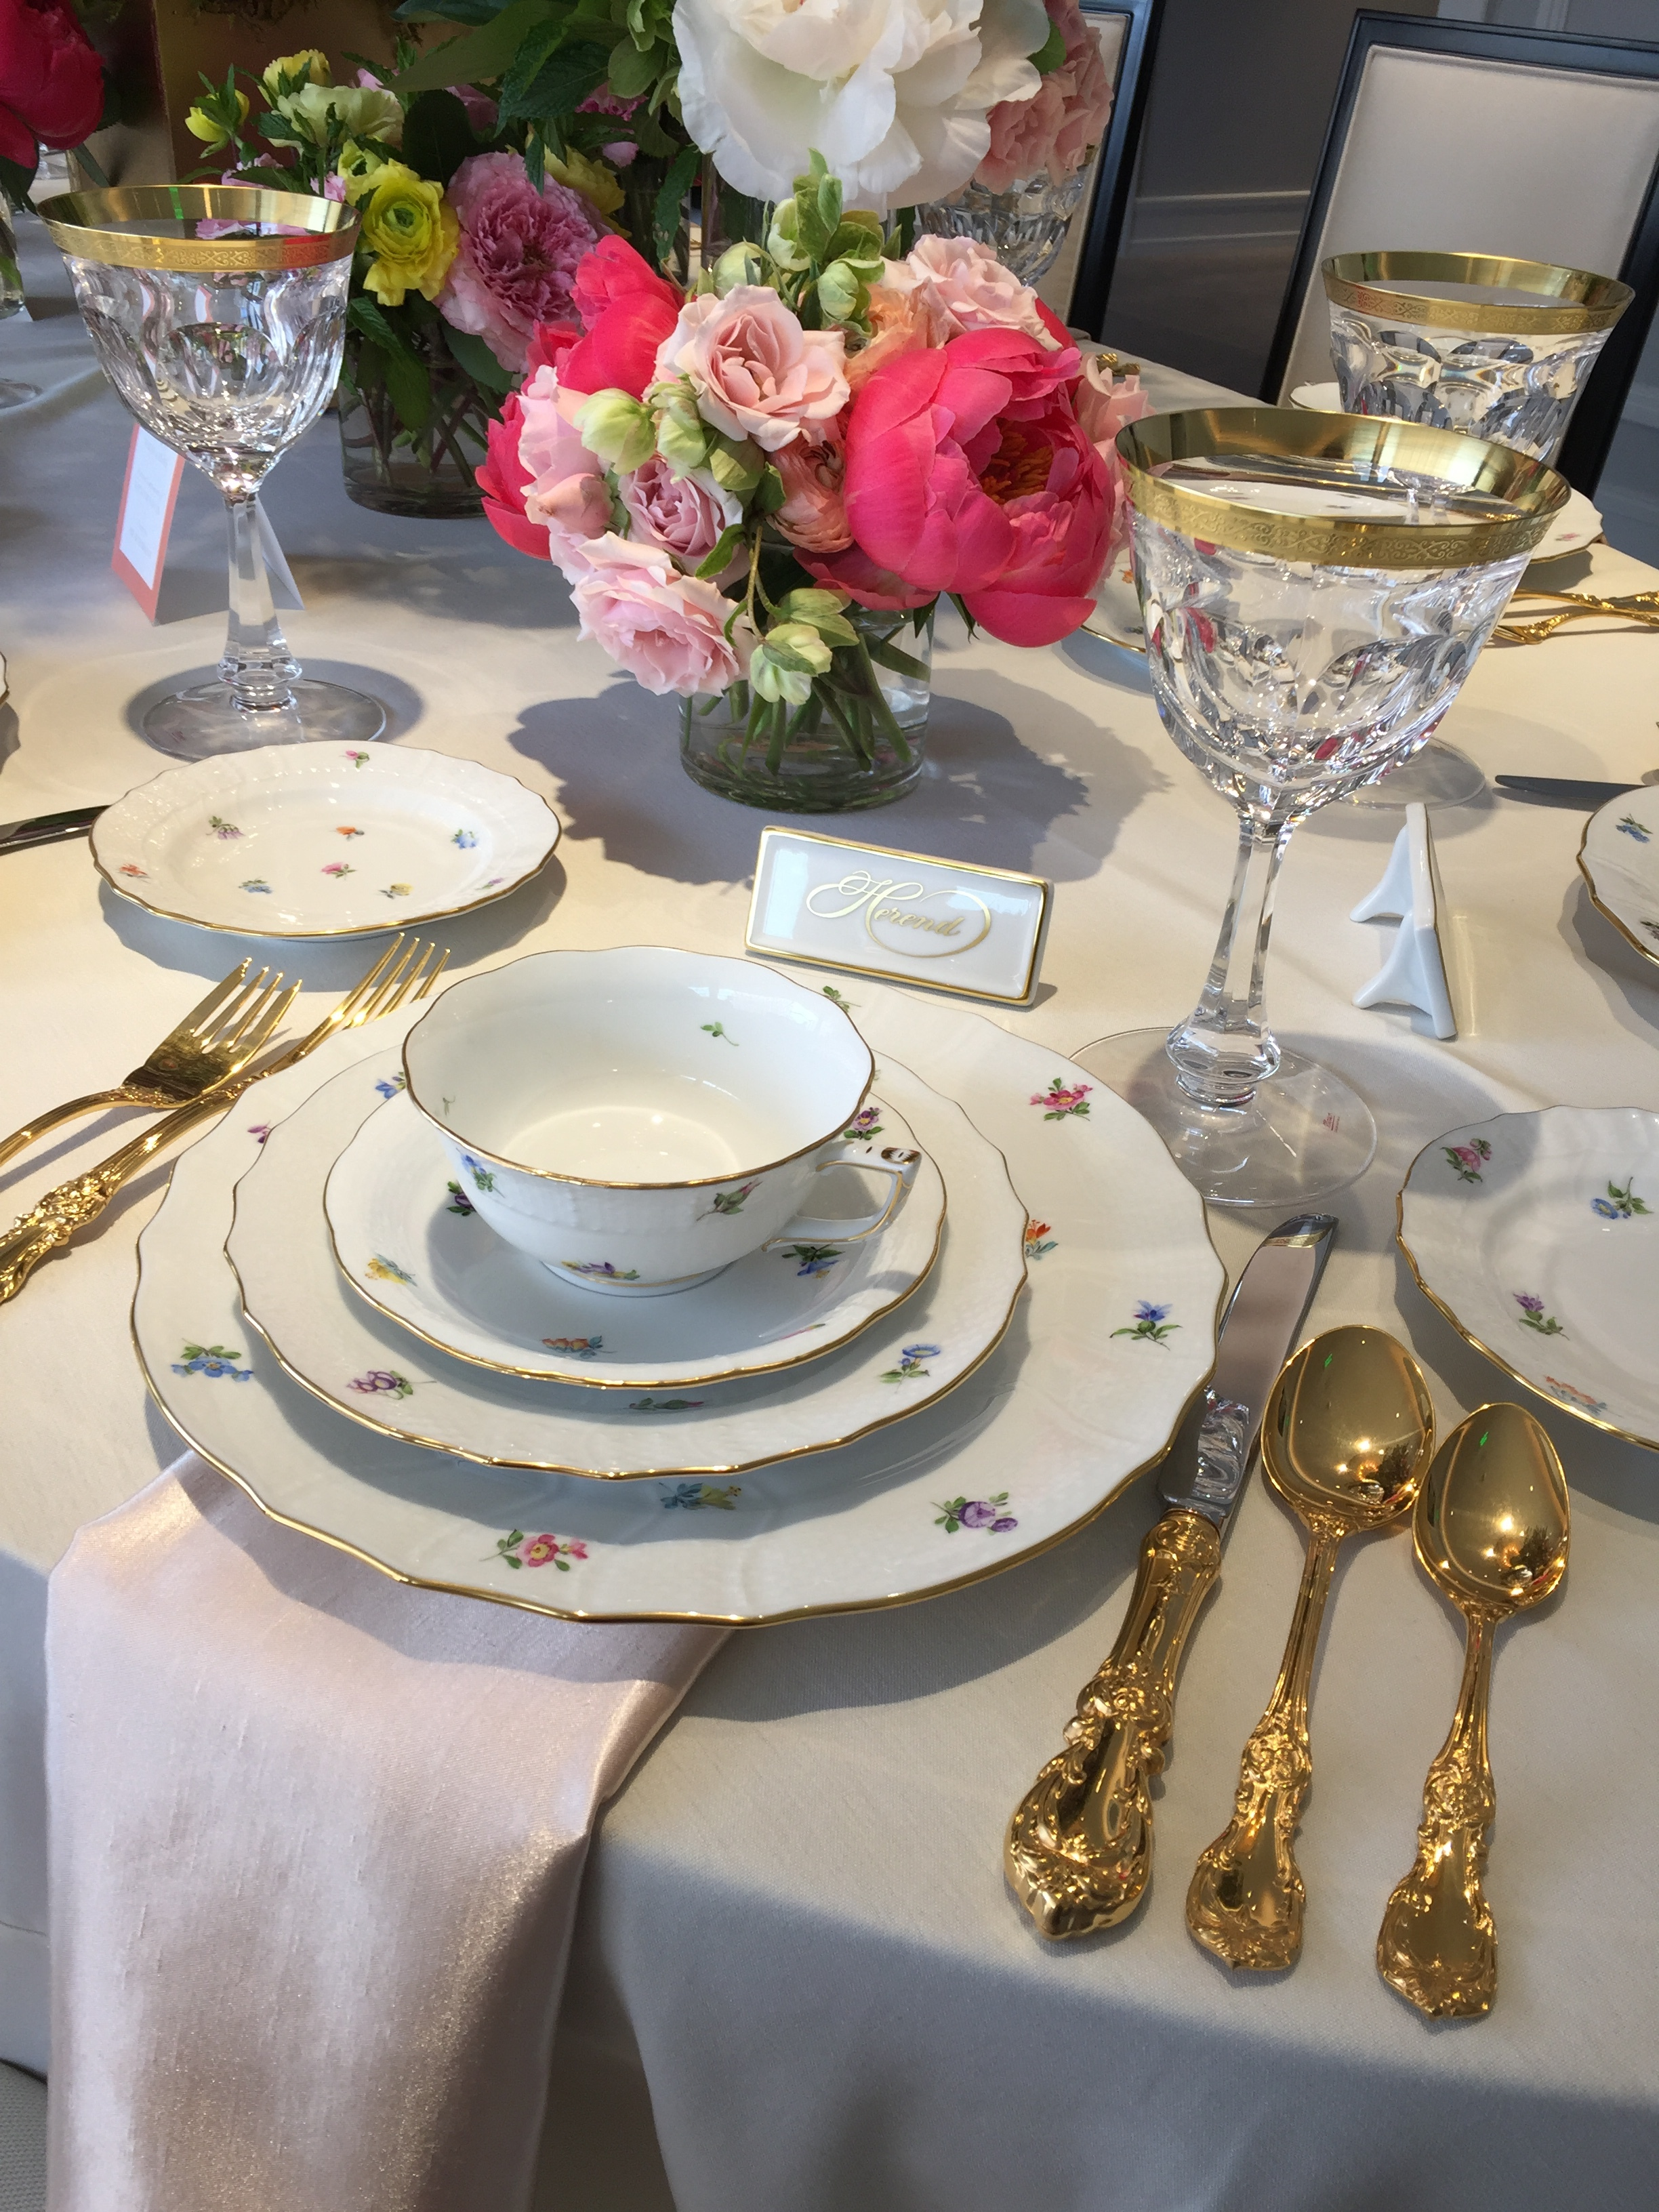 Individualized place settings